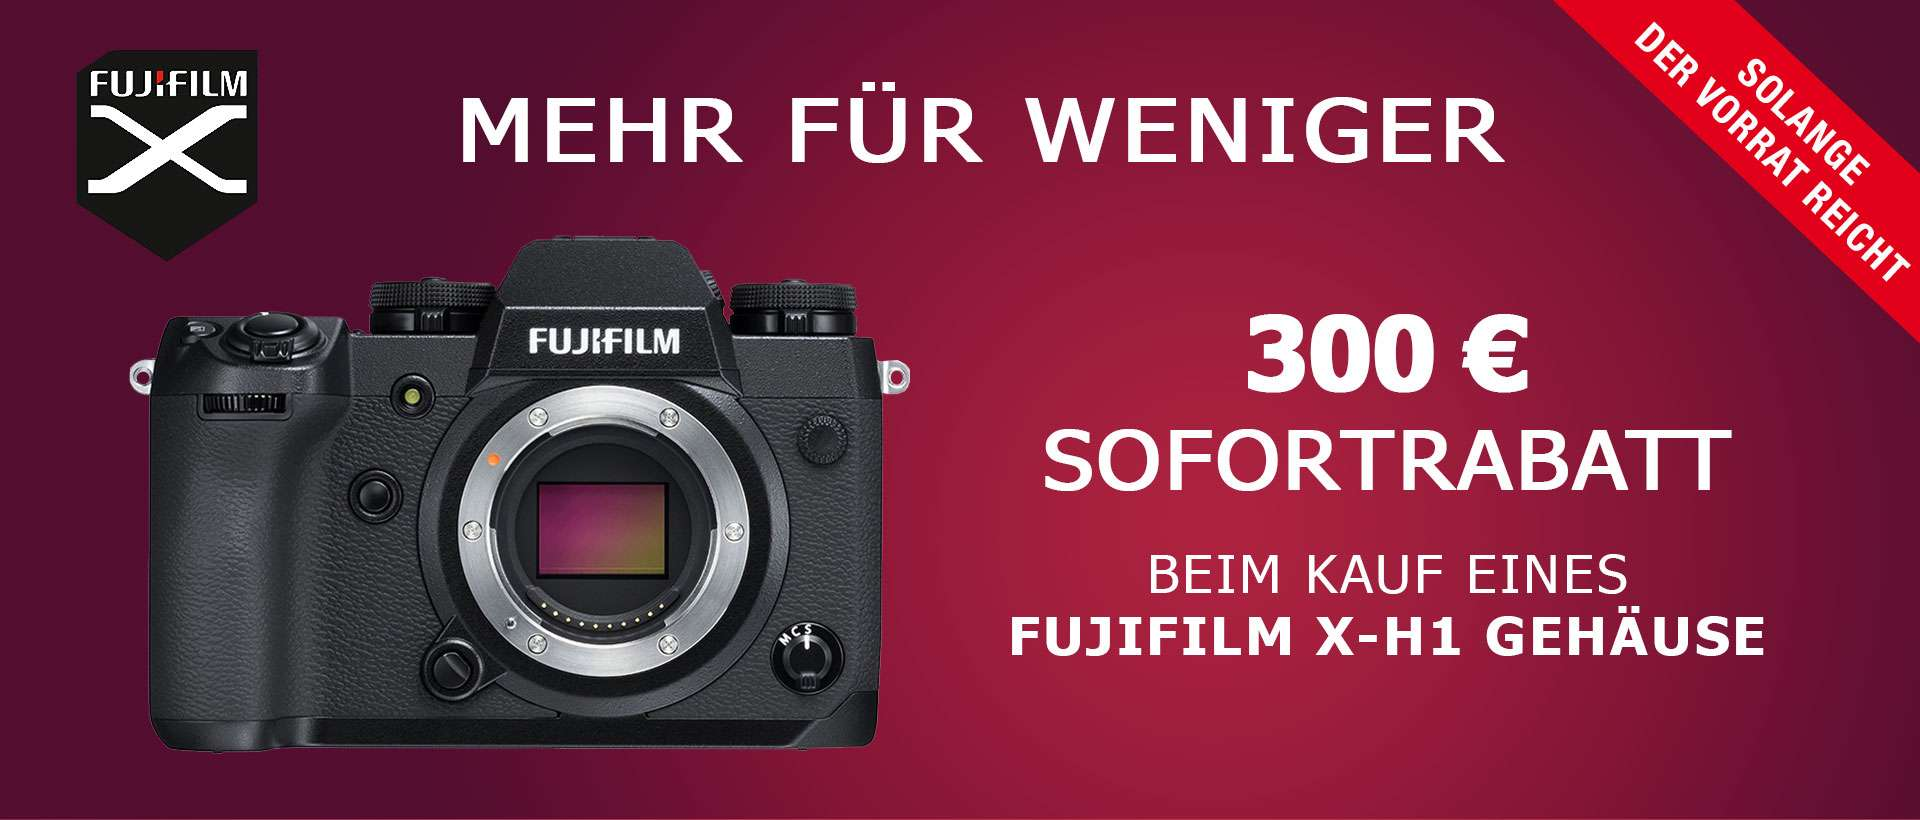 Fujifilm X-H1 Sofortrabatt-Aktion